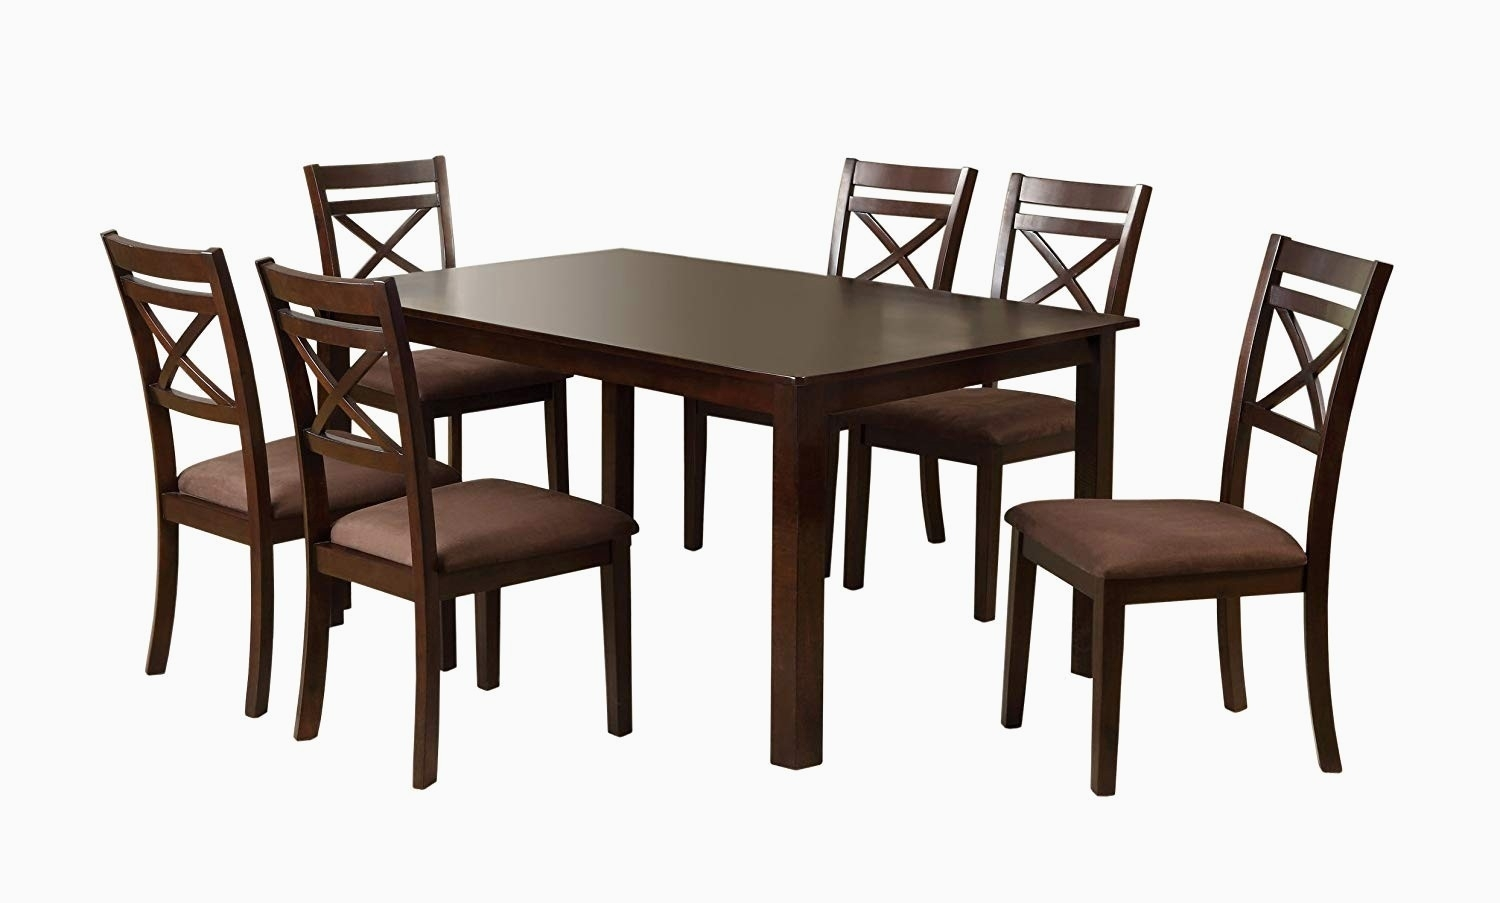 Encino Espresso Rectangular Dining Table – Dining Tables Ideas Inside Most Recently Released Lindy Espresso Rectangle Dining Tables (Image 3 of 20)